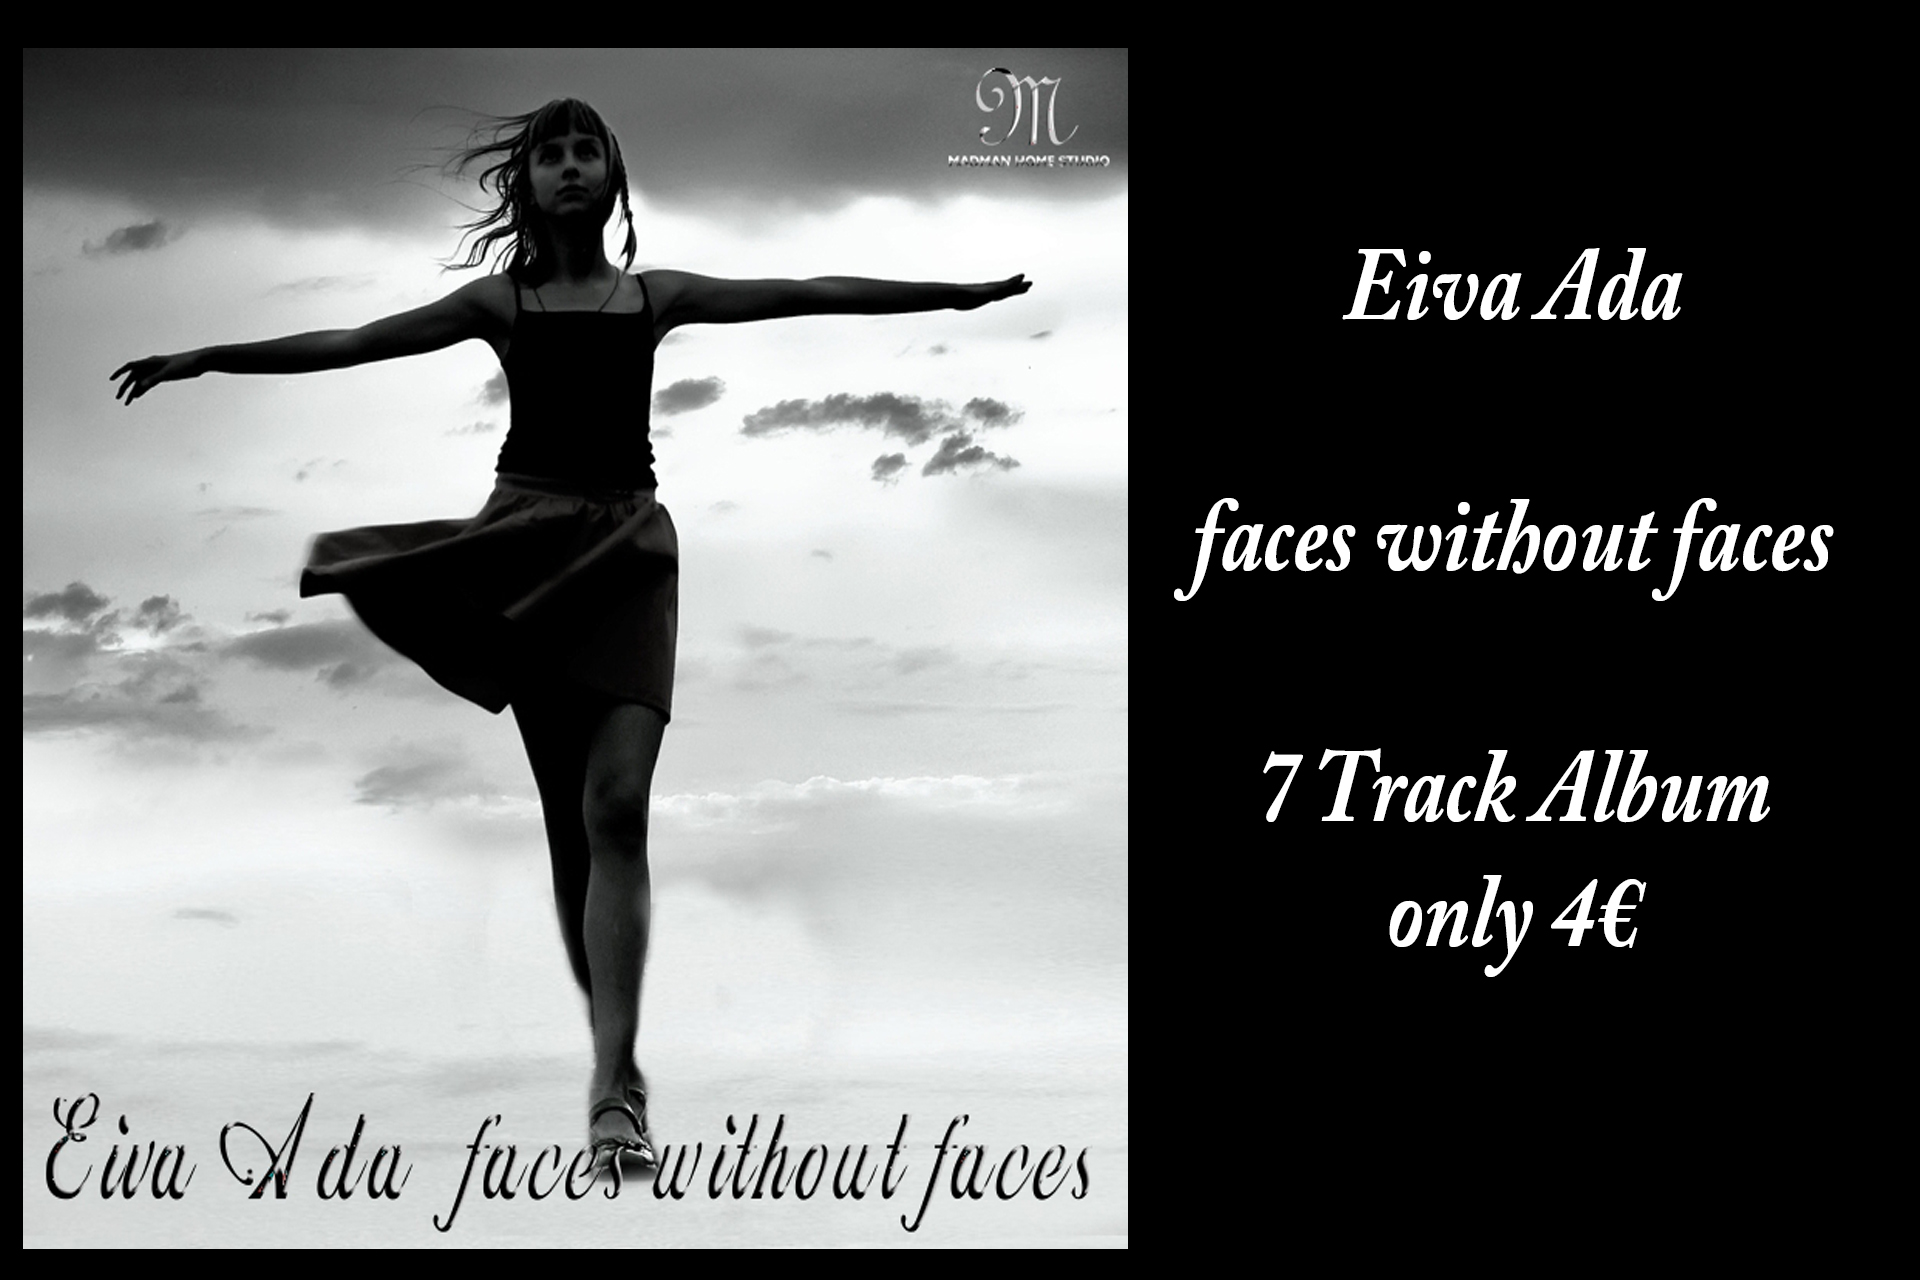 Eiva Ada faces